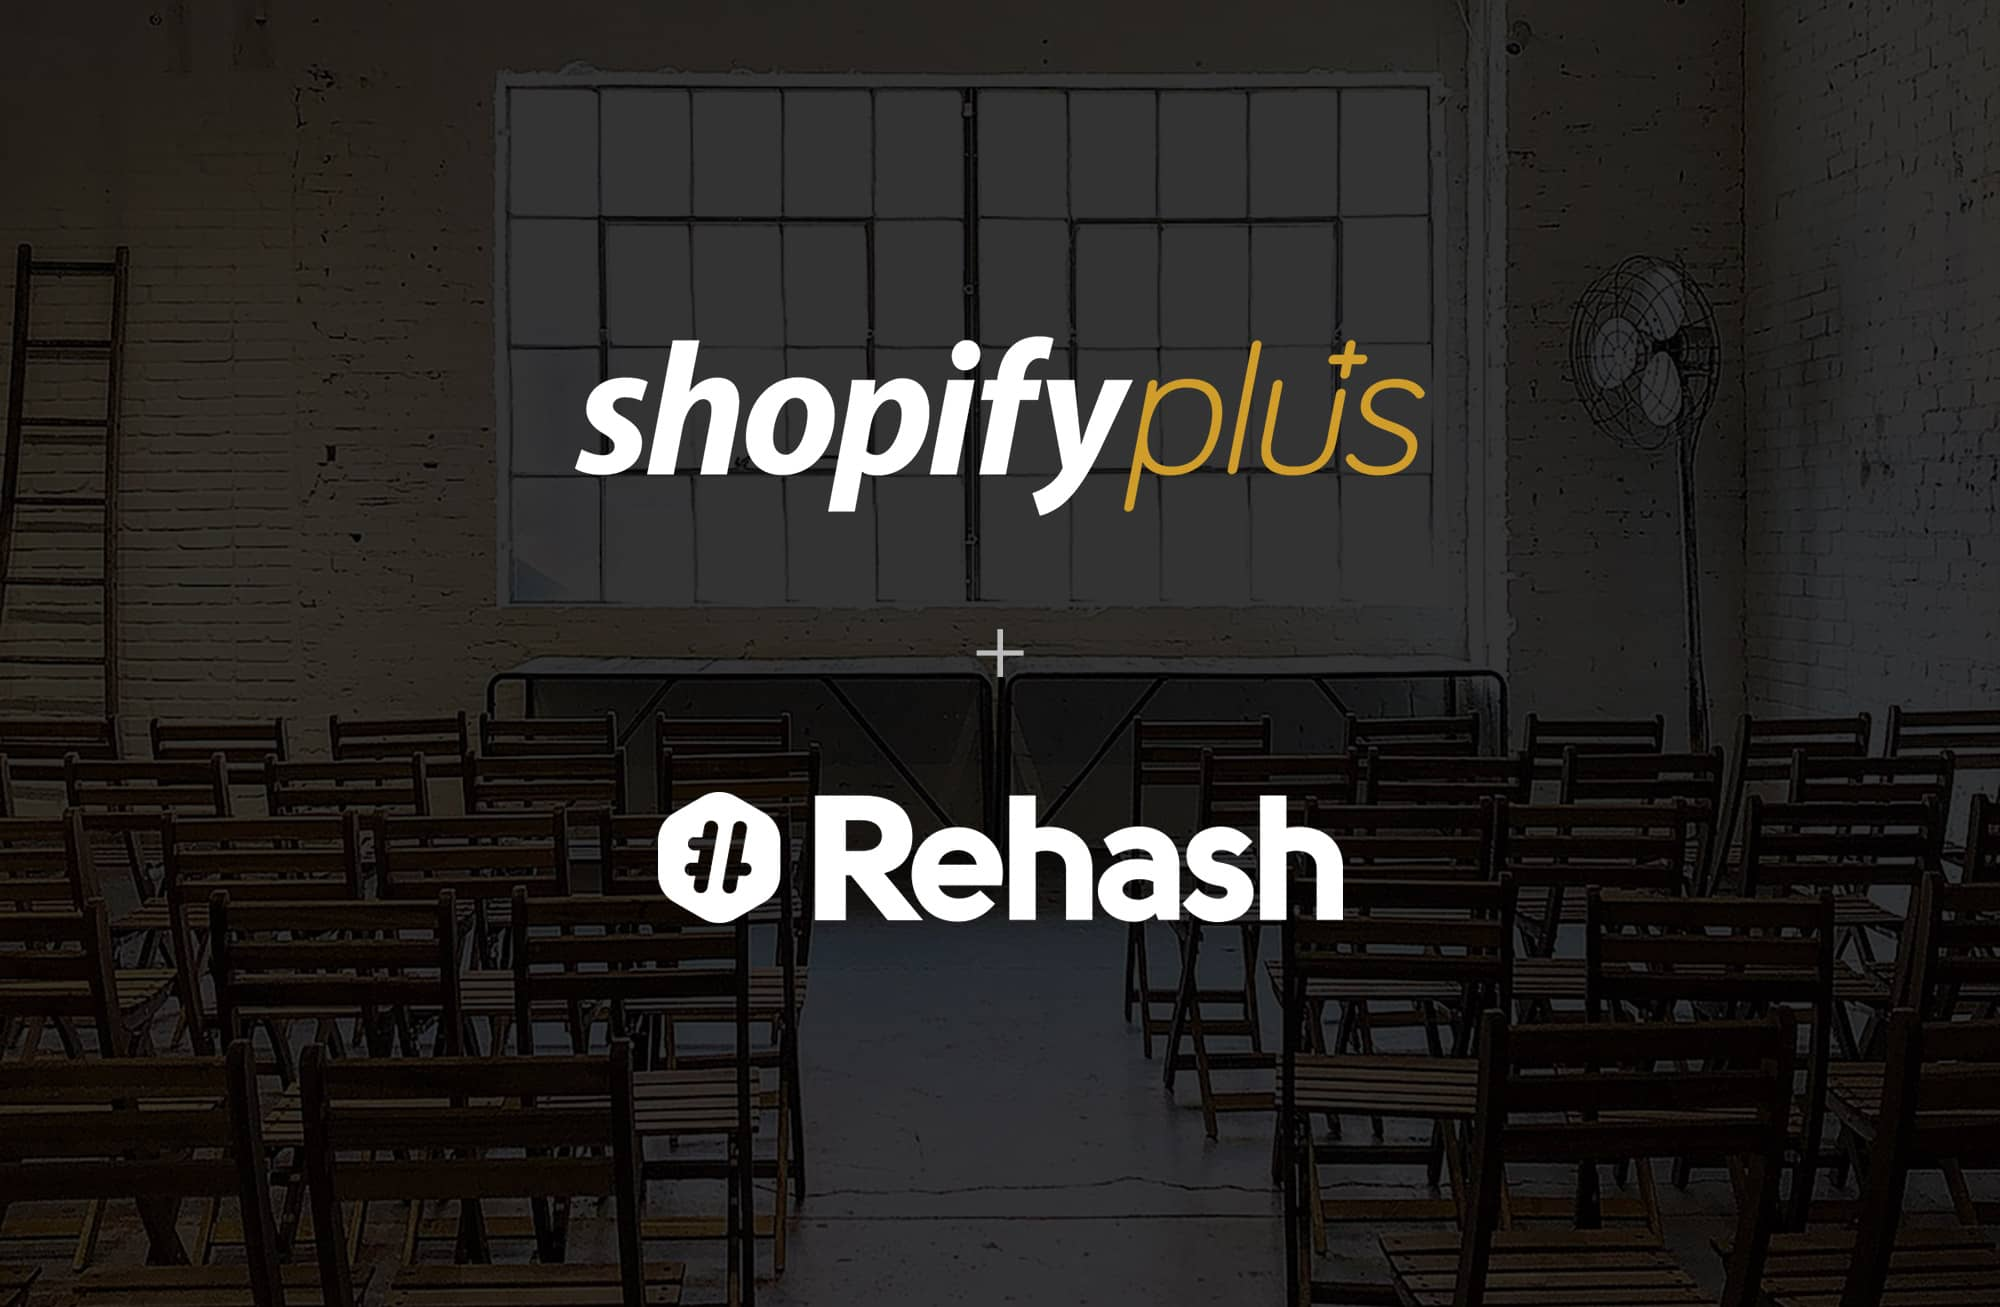 Shopify plus meetup